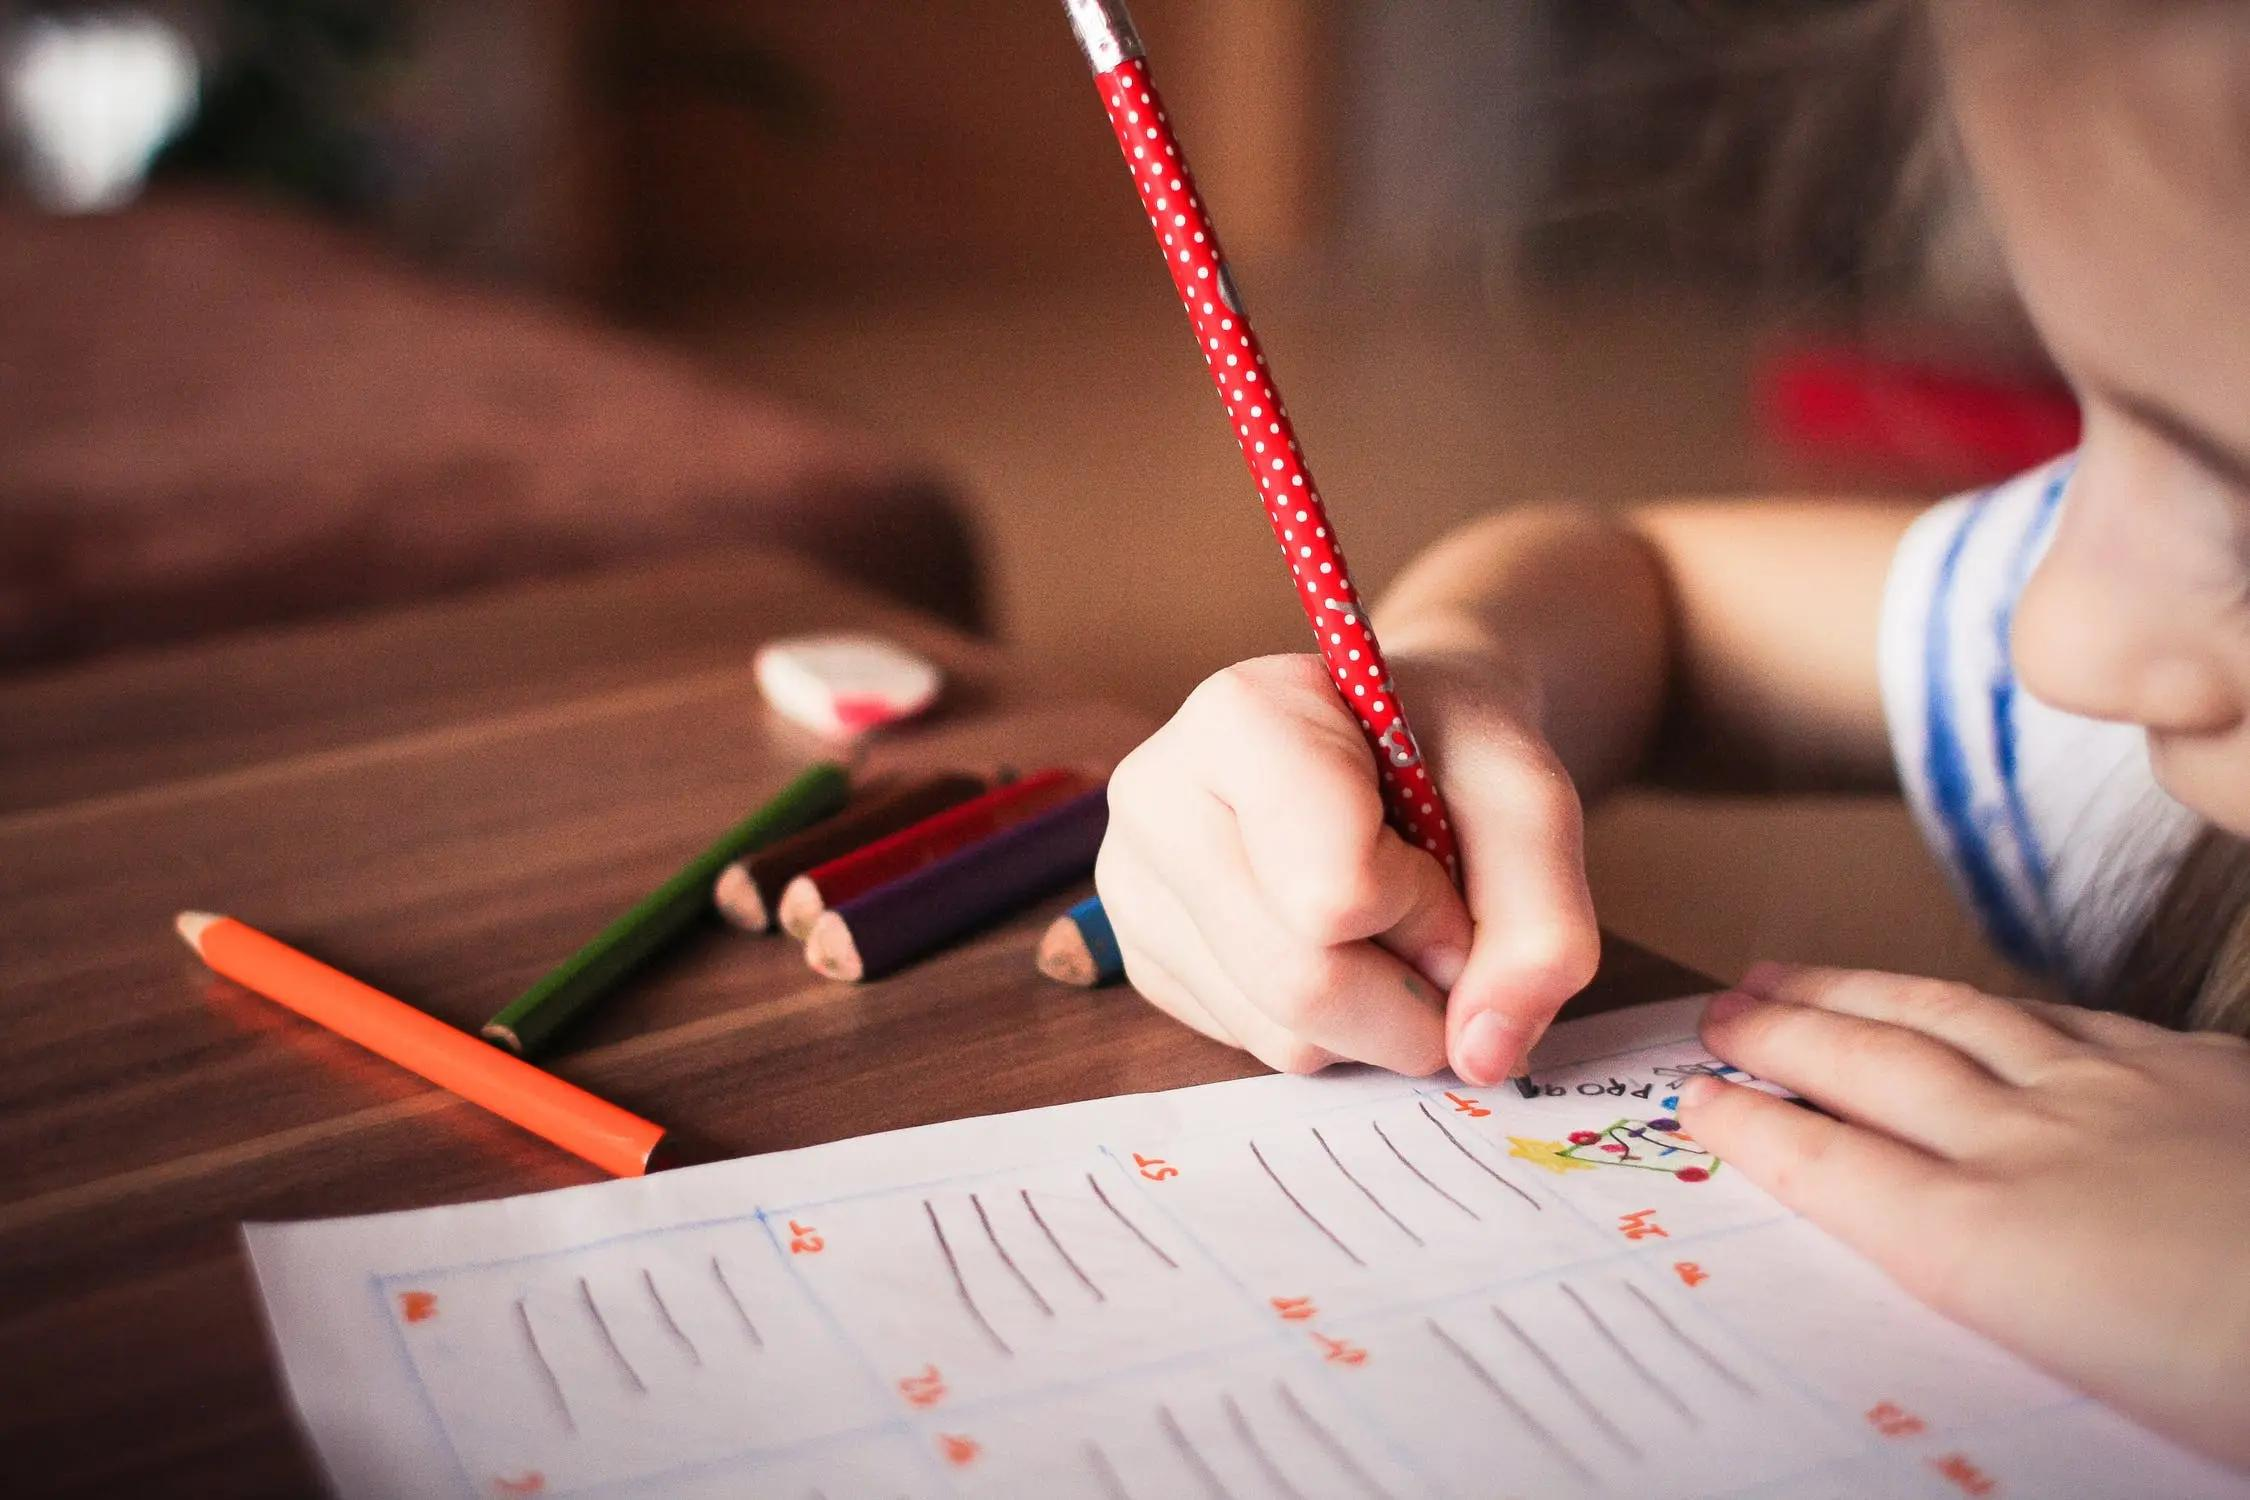 Writing Instrument Accessory,Writing,Text,Child,Pencil,Hand,Homework,Finger